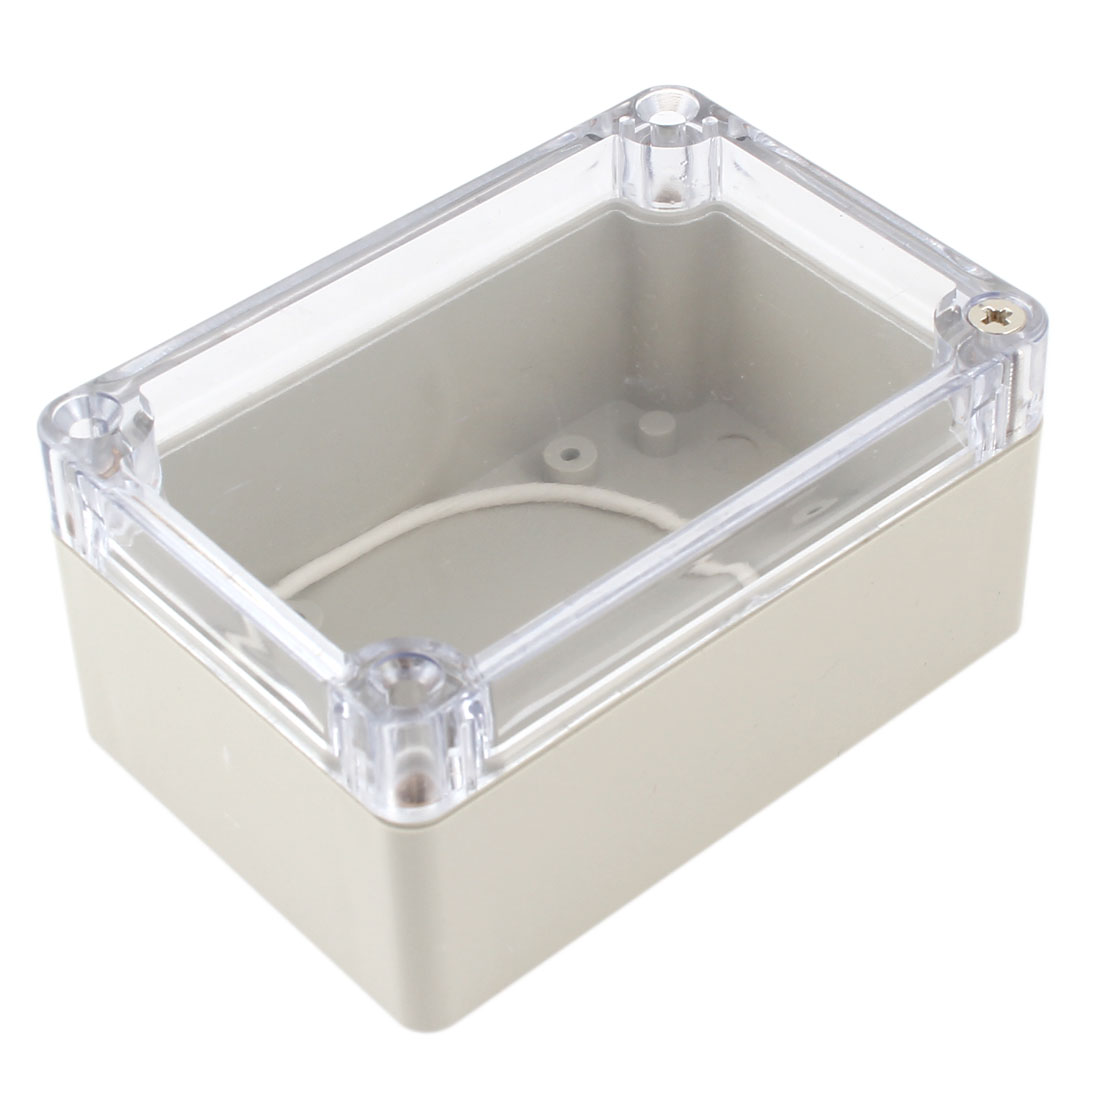 100mm x 68mm x 50mm Plastic Enclosure Case DIY Junction Box